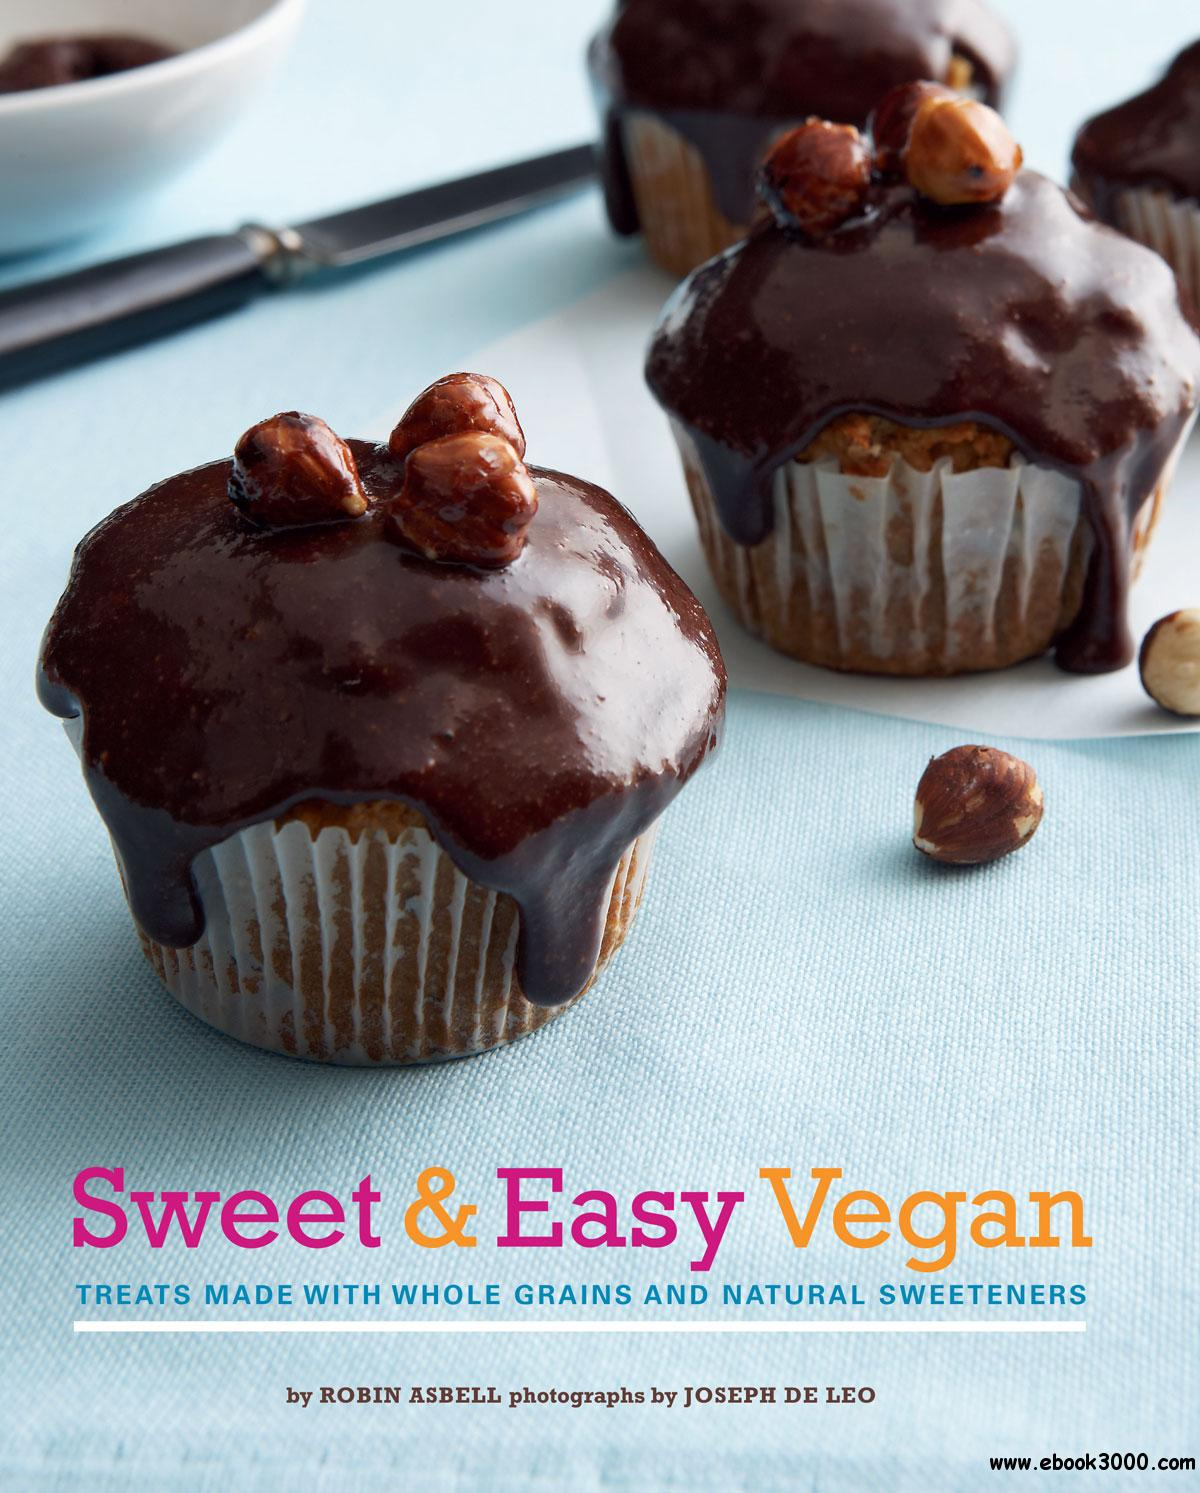 Sweet & Easy Vegan: Treats Made with Whole Grains and Natural Sweeteners free download